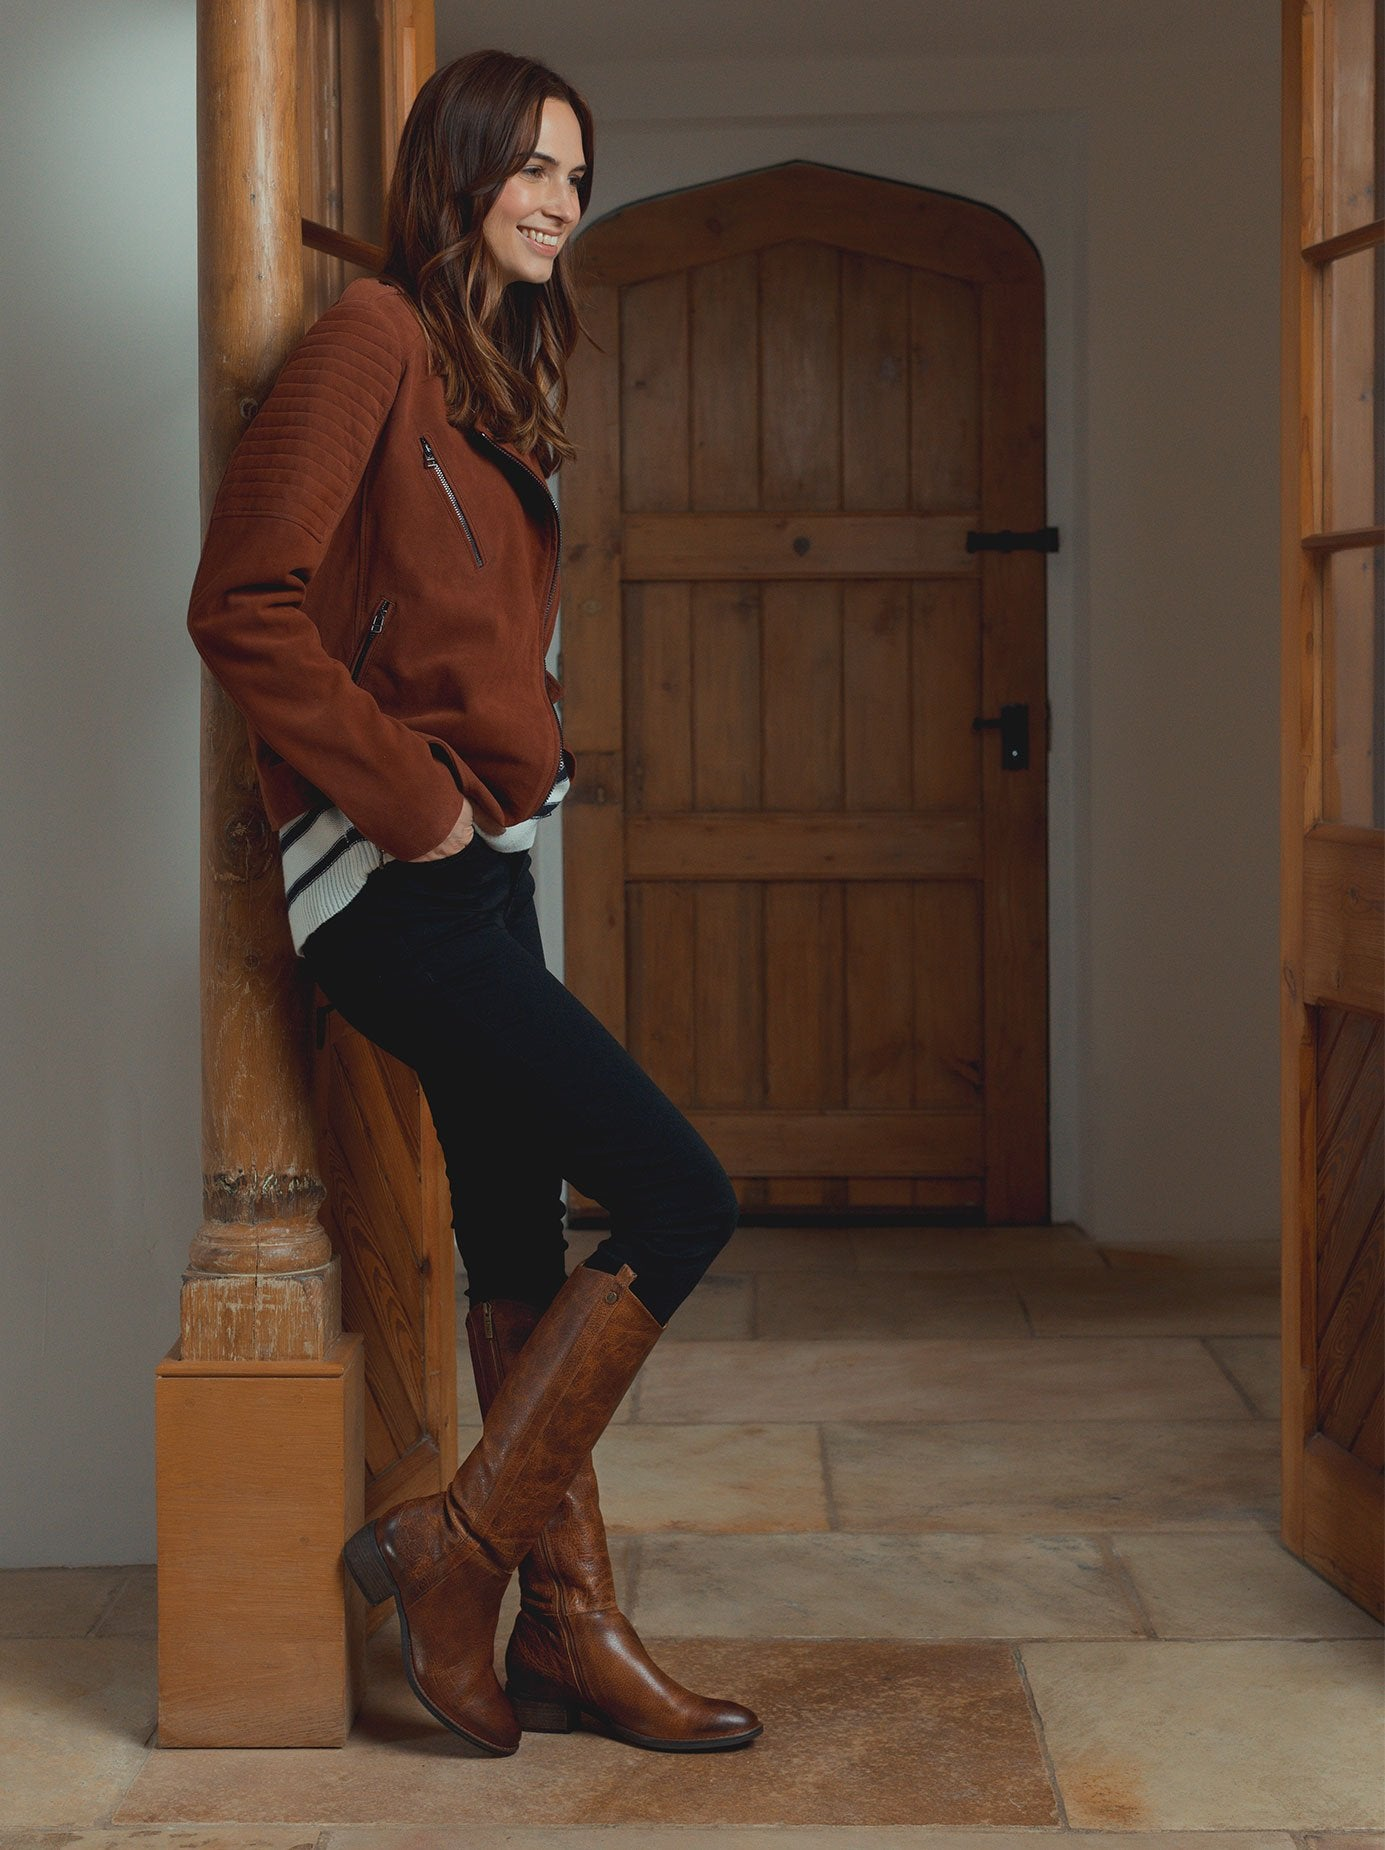 The staple tan boot has a curved topline - both stylish and practical.